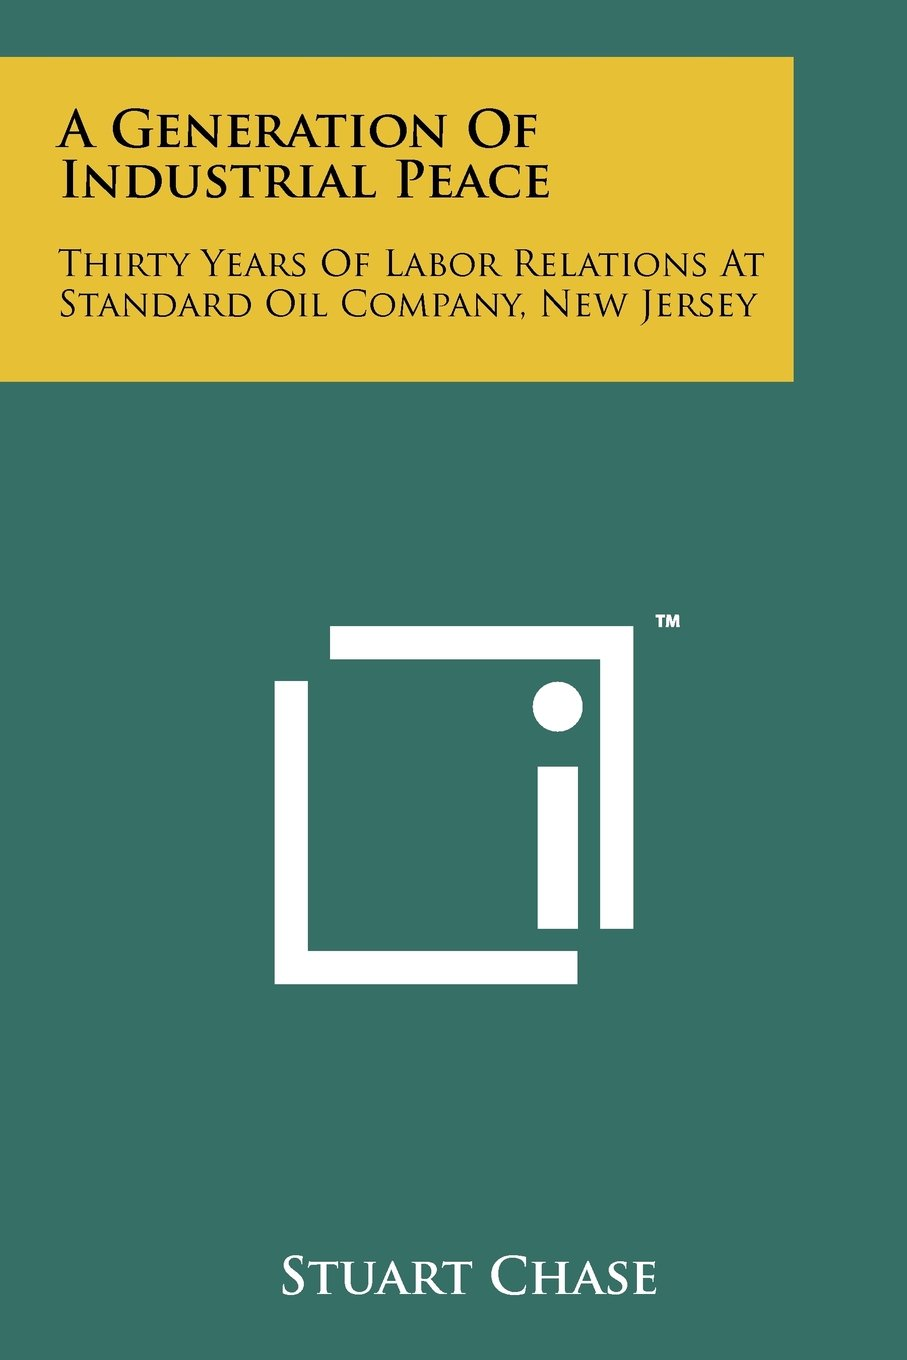 Download A Generation Of Industrial Peace: Thirty Years Of Labor Relations At Standard Oil Company, New Jersey pdf